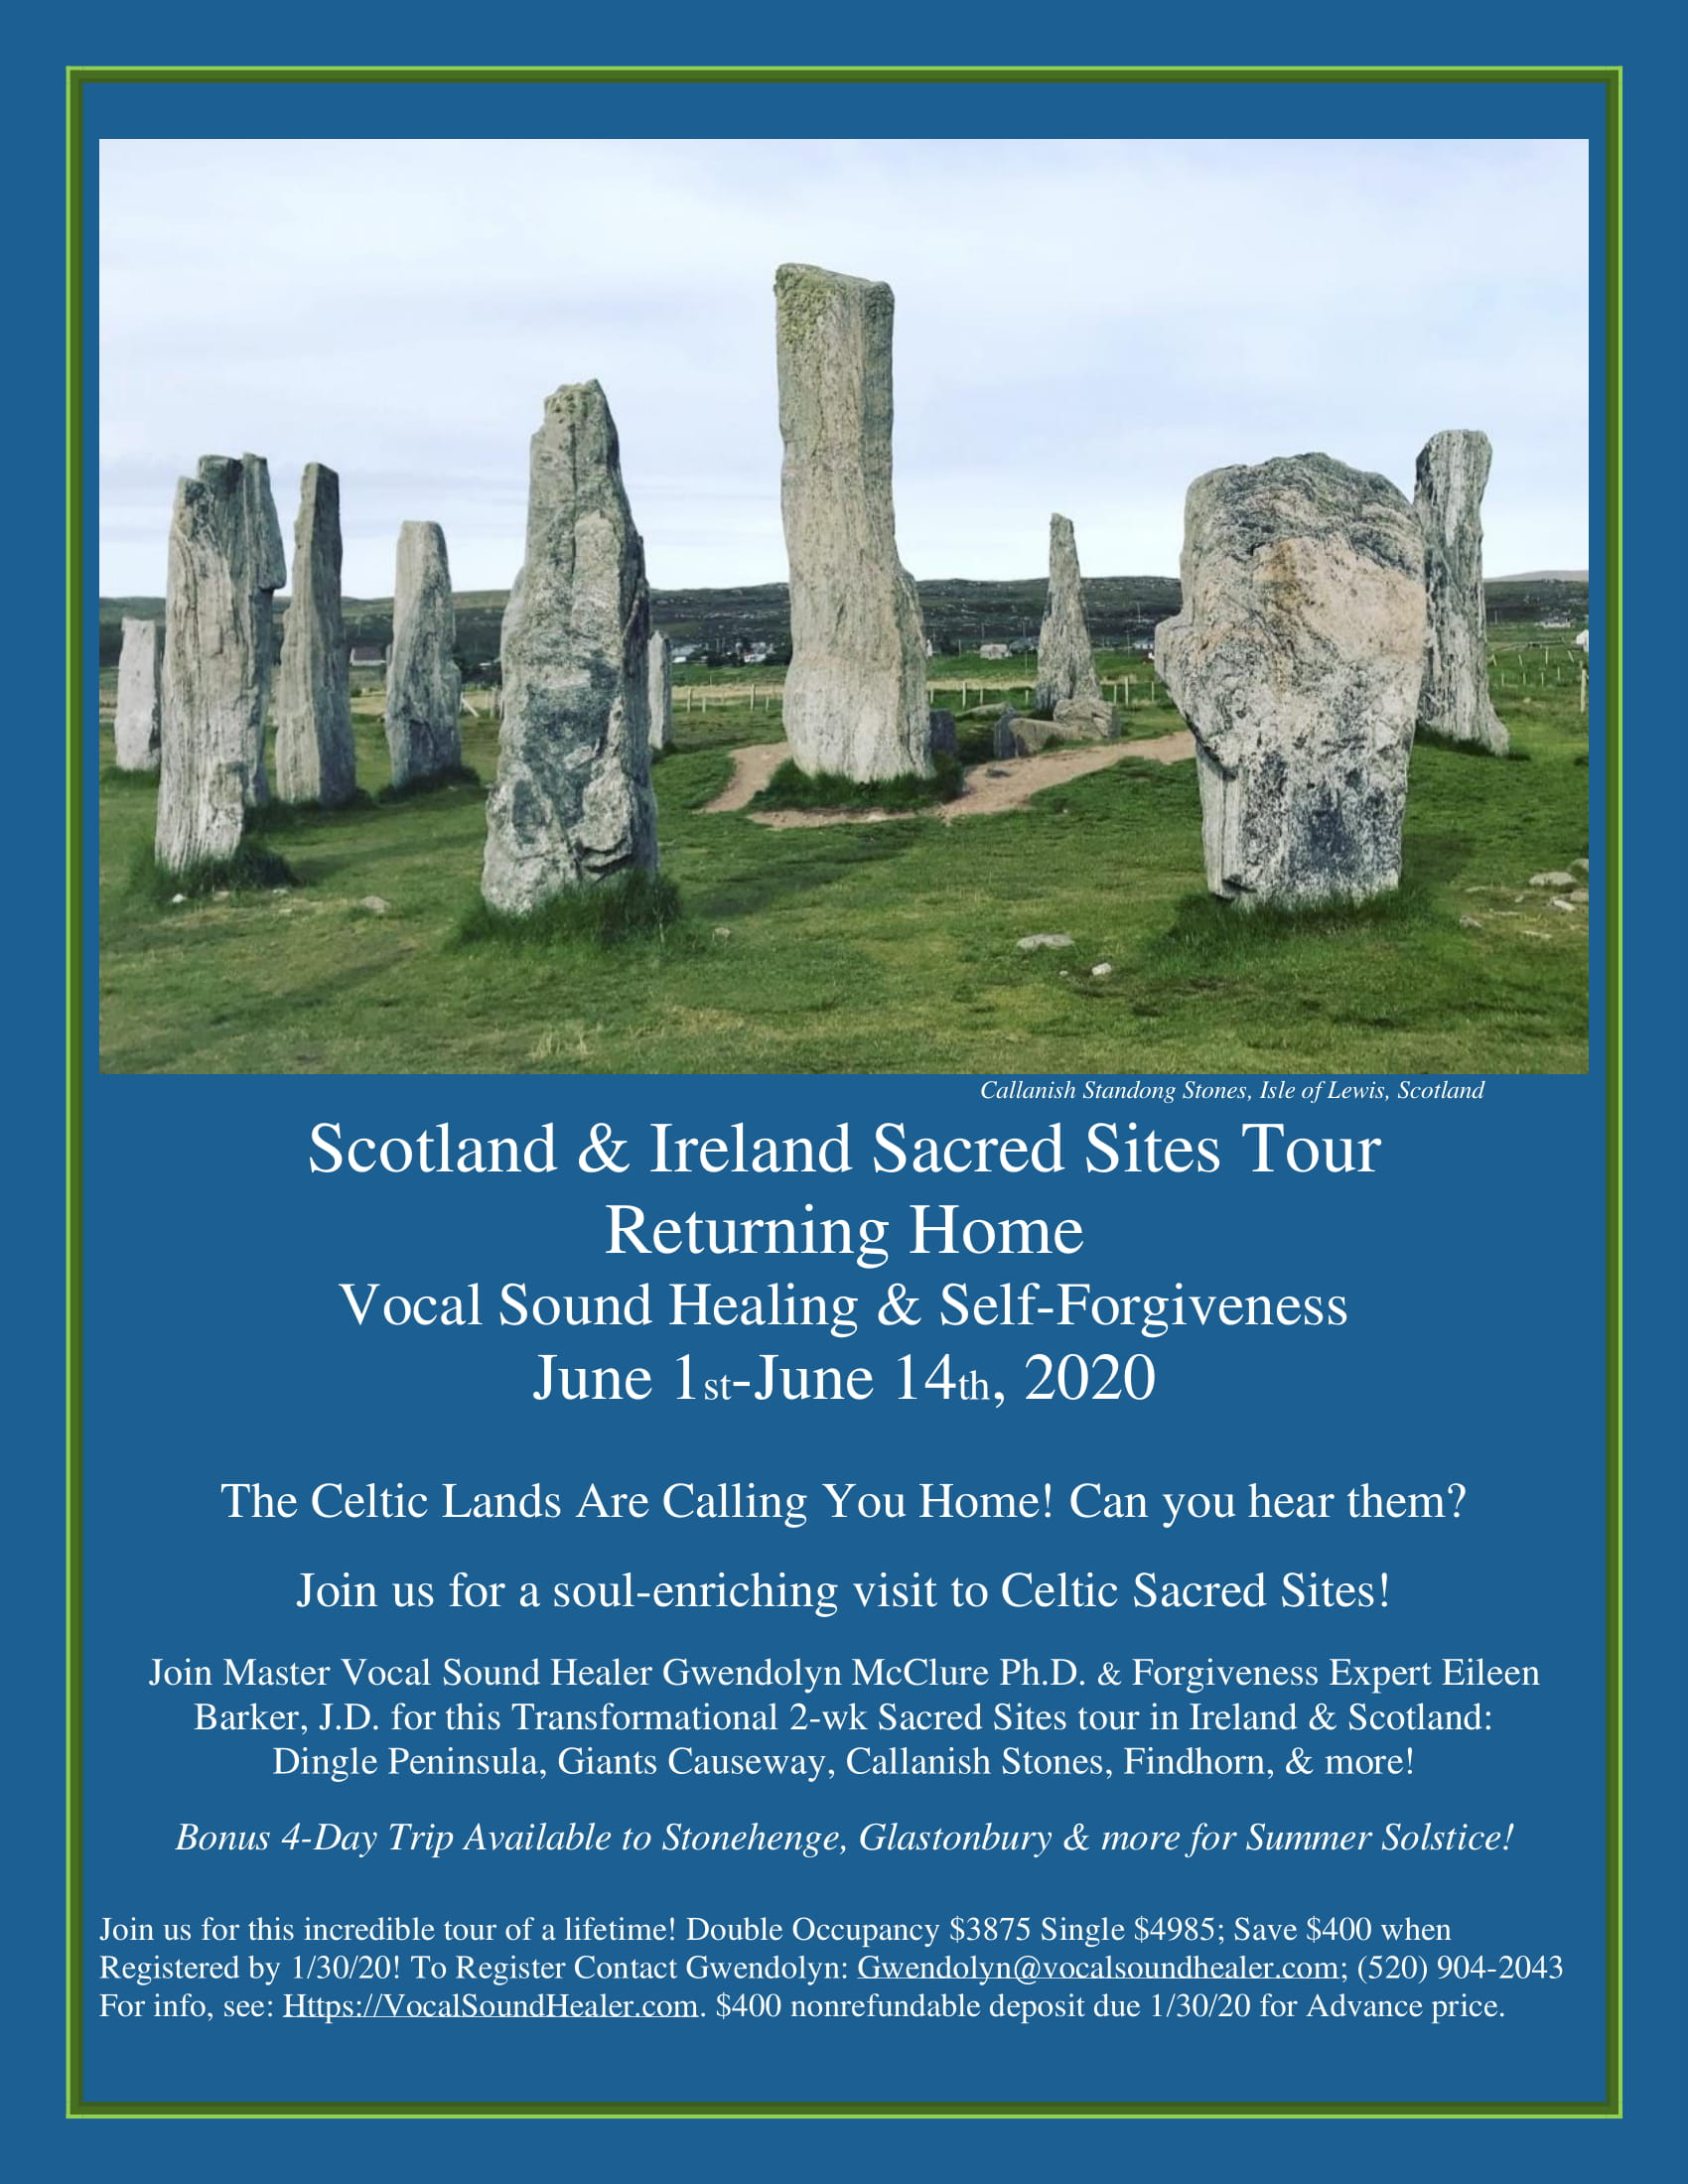 Isis & Gwendolyn Ireland Scotland Flyer-1